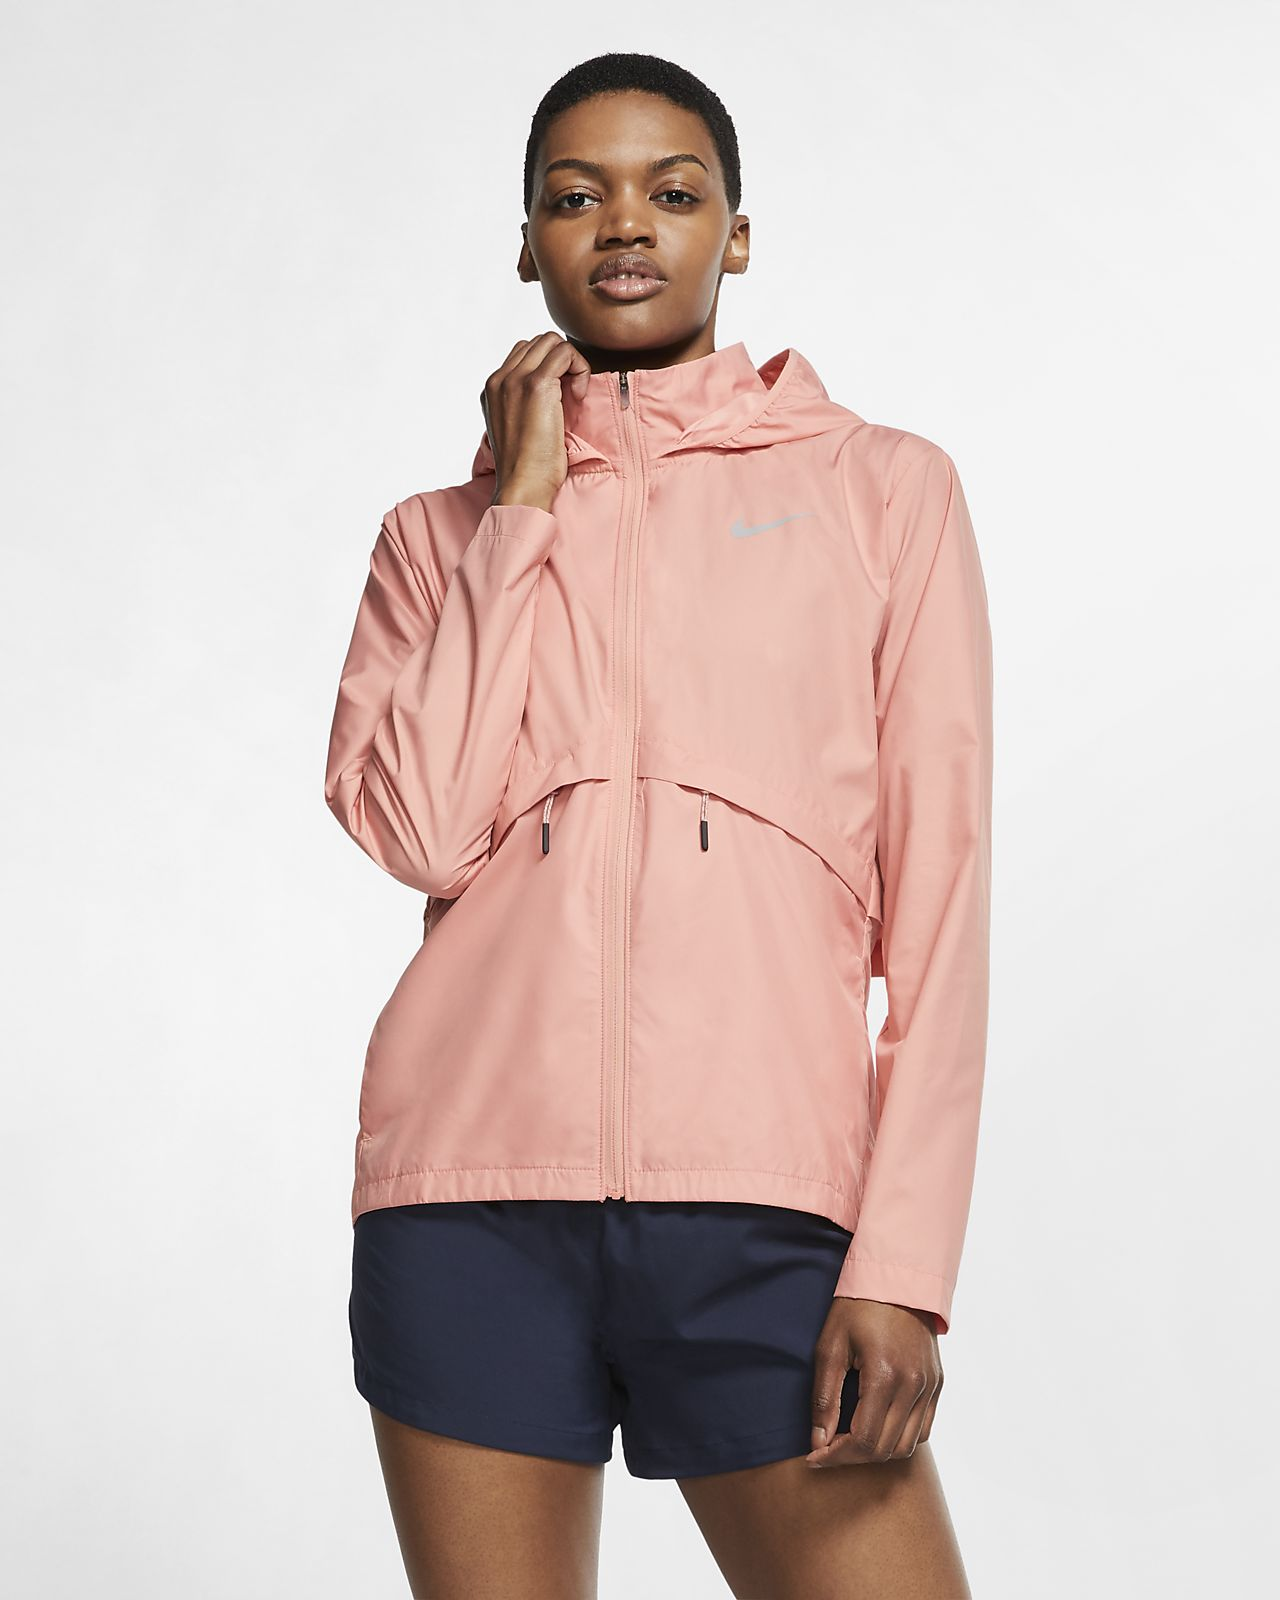 Chamarra impermeable de running plegable para mujer Nike Essential